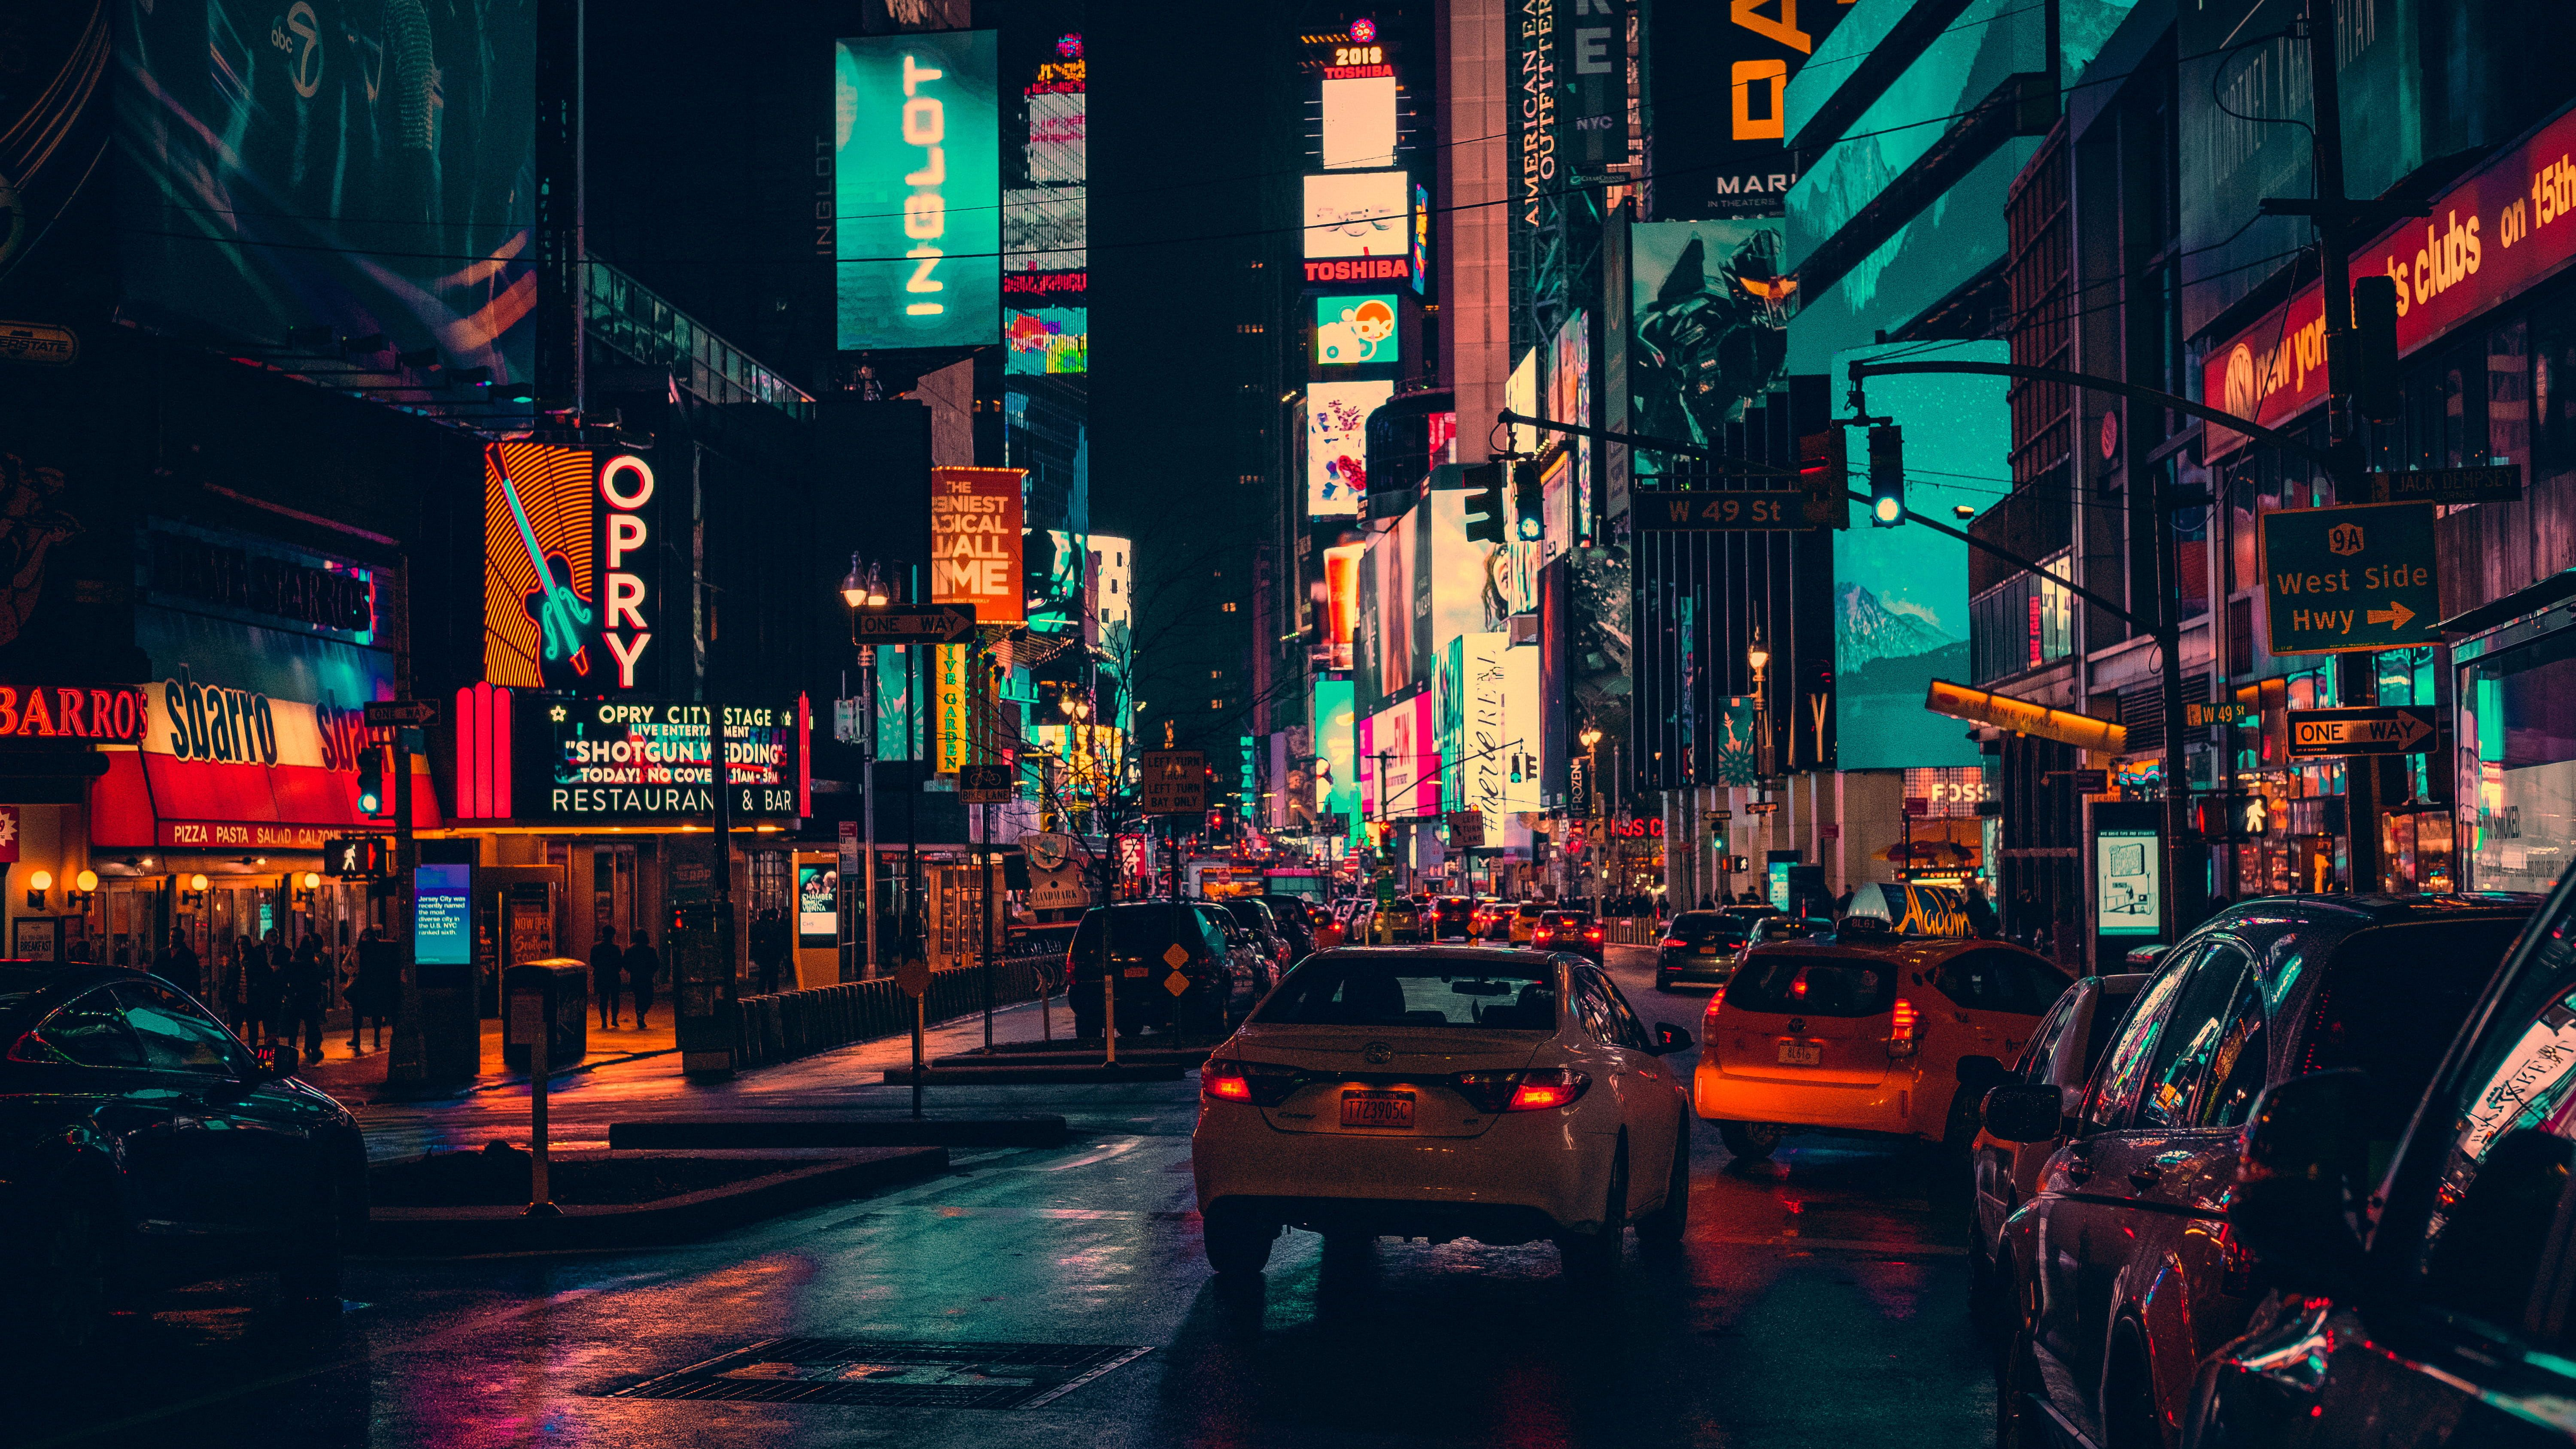 Cars Wallpaper On Road Surrounded By Building During Nighttime Town City In 2021 City Wallpaper Reflection Photos Neon Wallpaper City buildings road cars night street